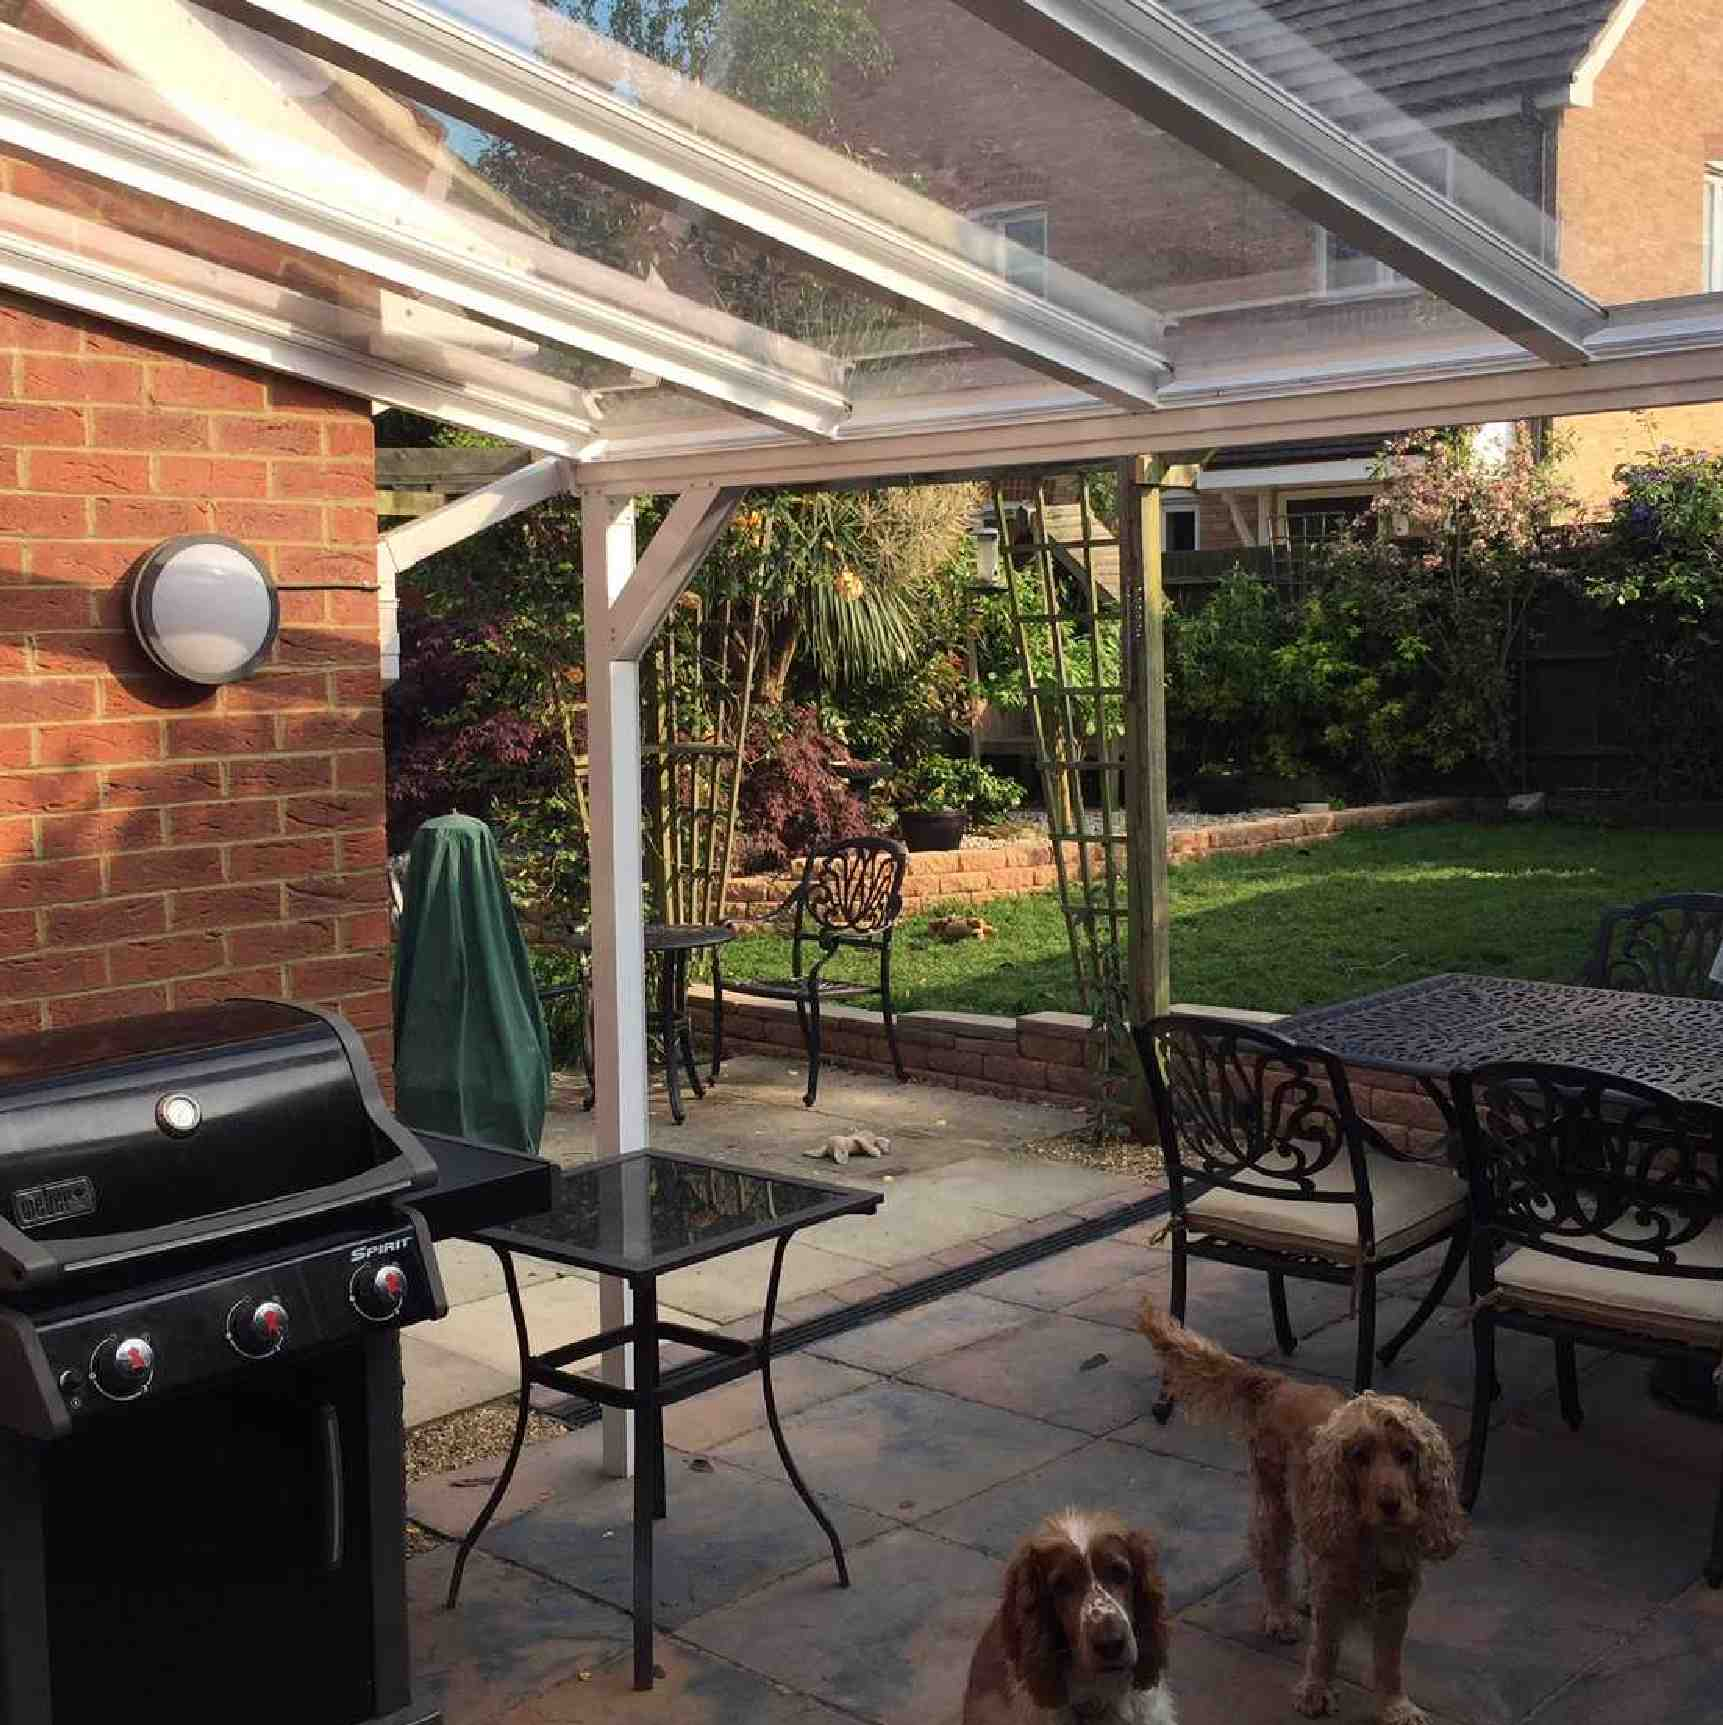 Omega Verandah with 6mm Glass Clear Plate Polycarbonate Glazing - 7.0m (W) x 2.0m (P), (4) Supporting Posts